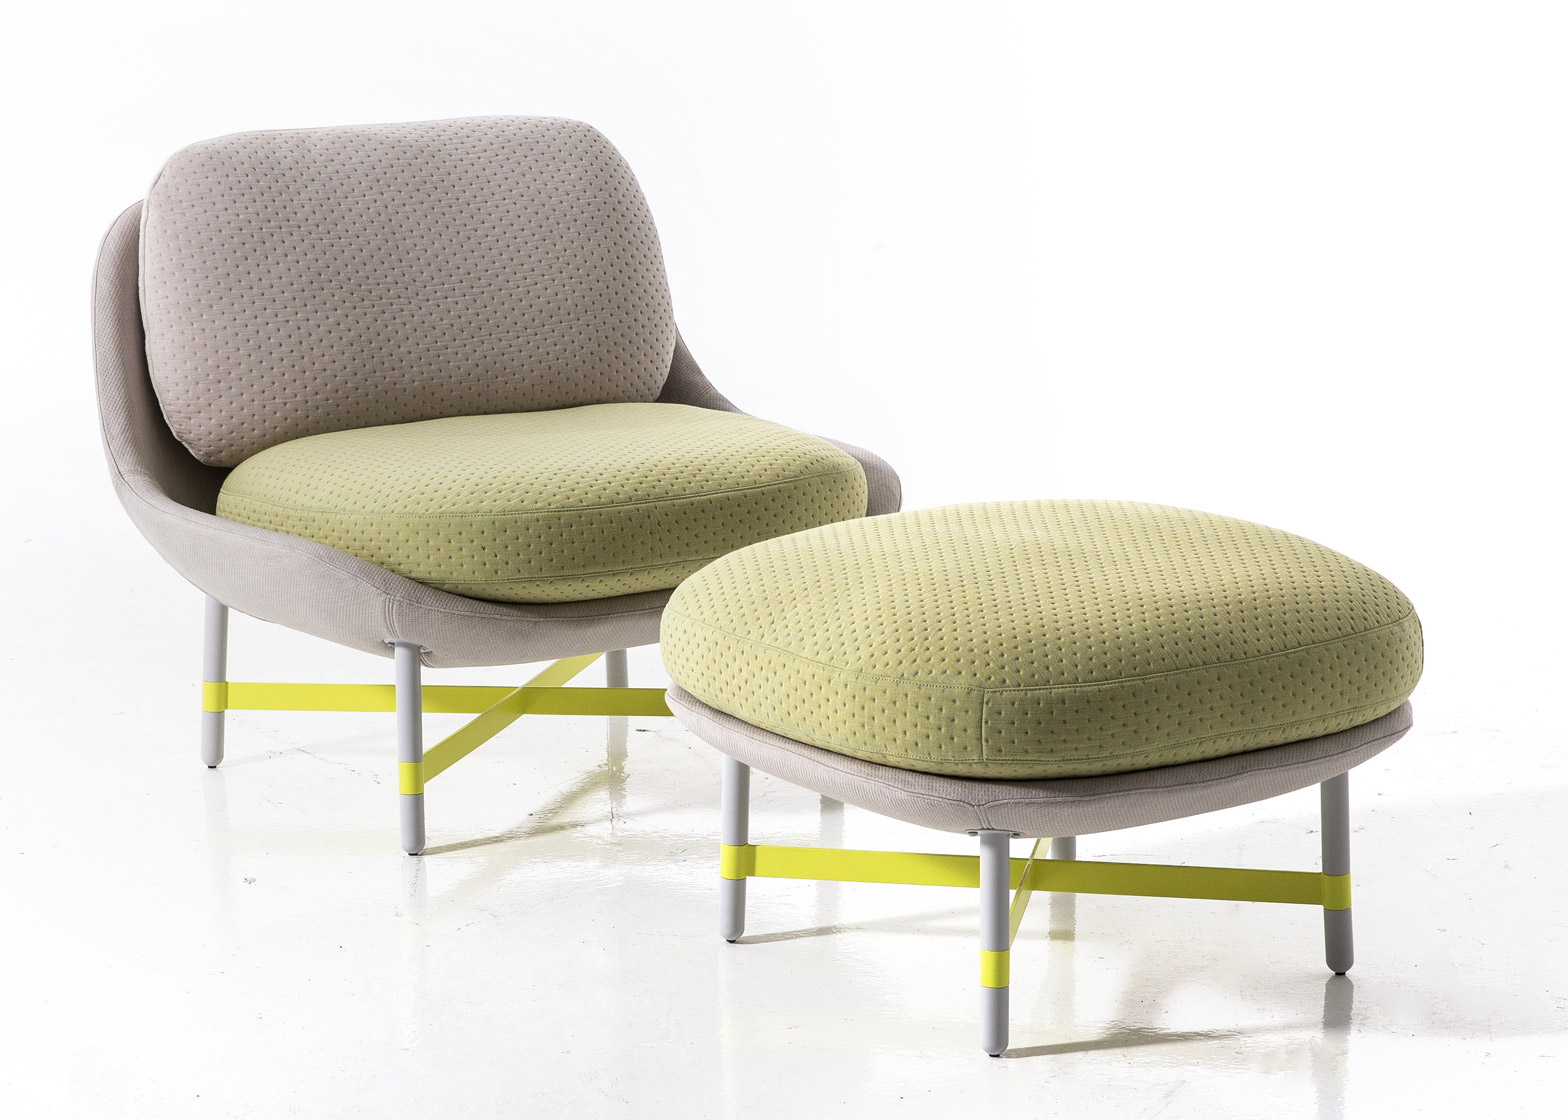 ottoman-scholten-baijings-seating-furniture-moroso-milan-design-week-2016_dezeen_1568_0.jpg